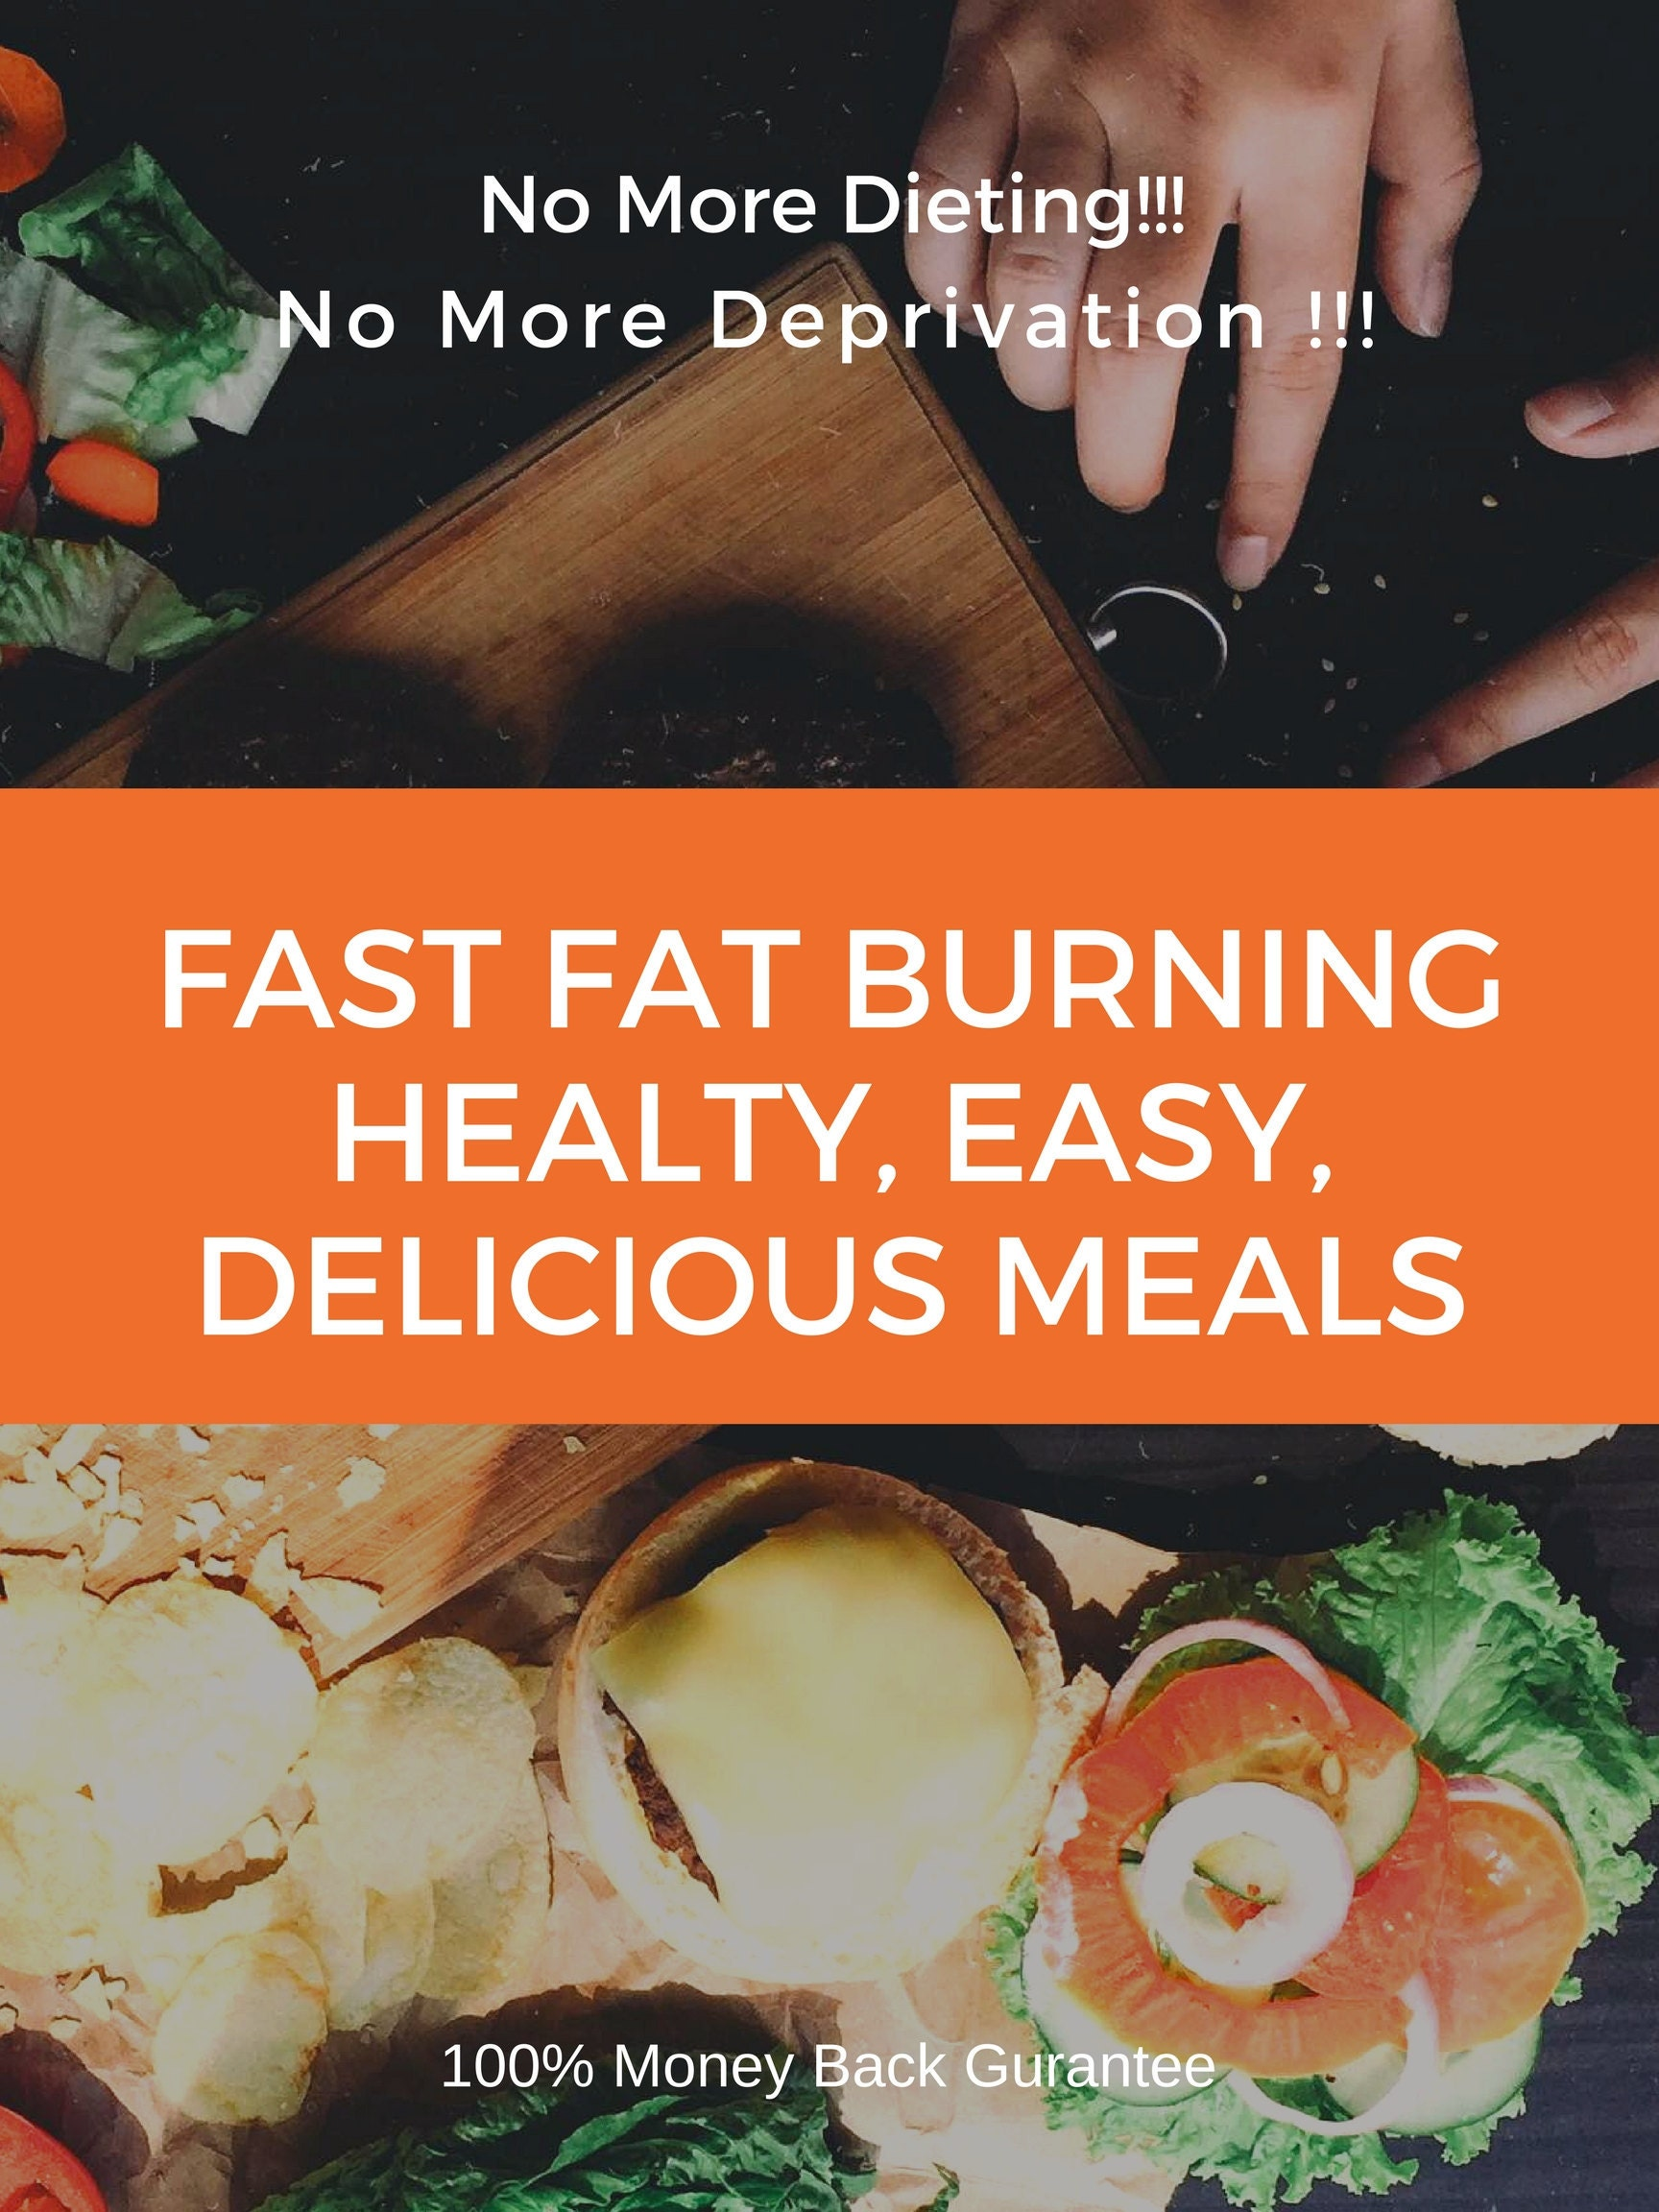 bride weight loss plan, fat burning foods, best way to lose weight